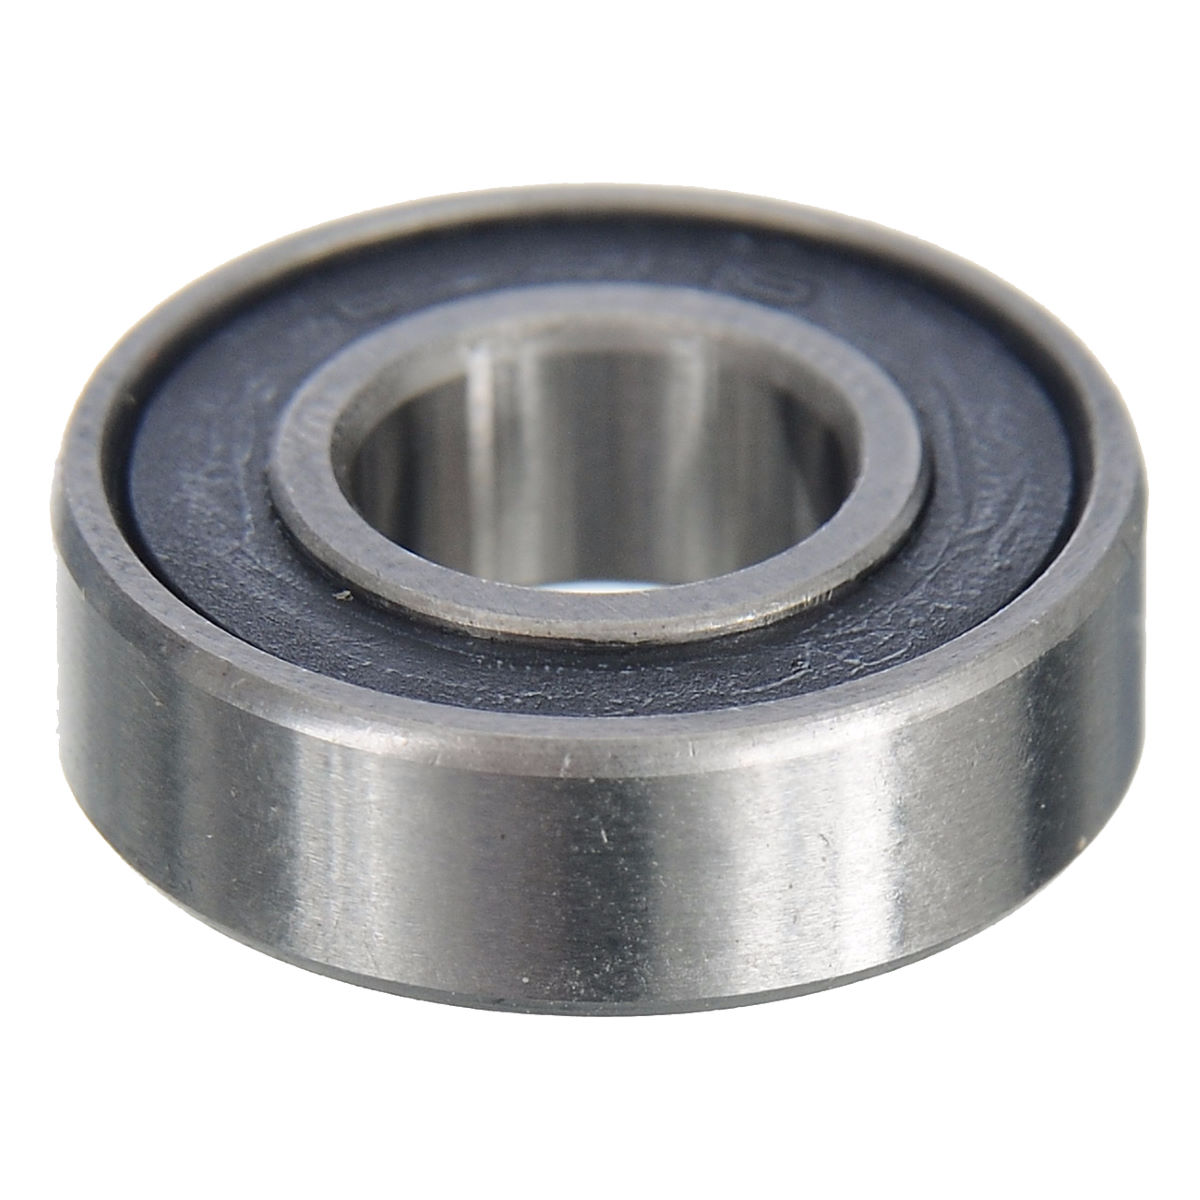 Brand-X Brand-X Sealed Bearing - 699 2RS Bearing   Wheel Hub Spares